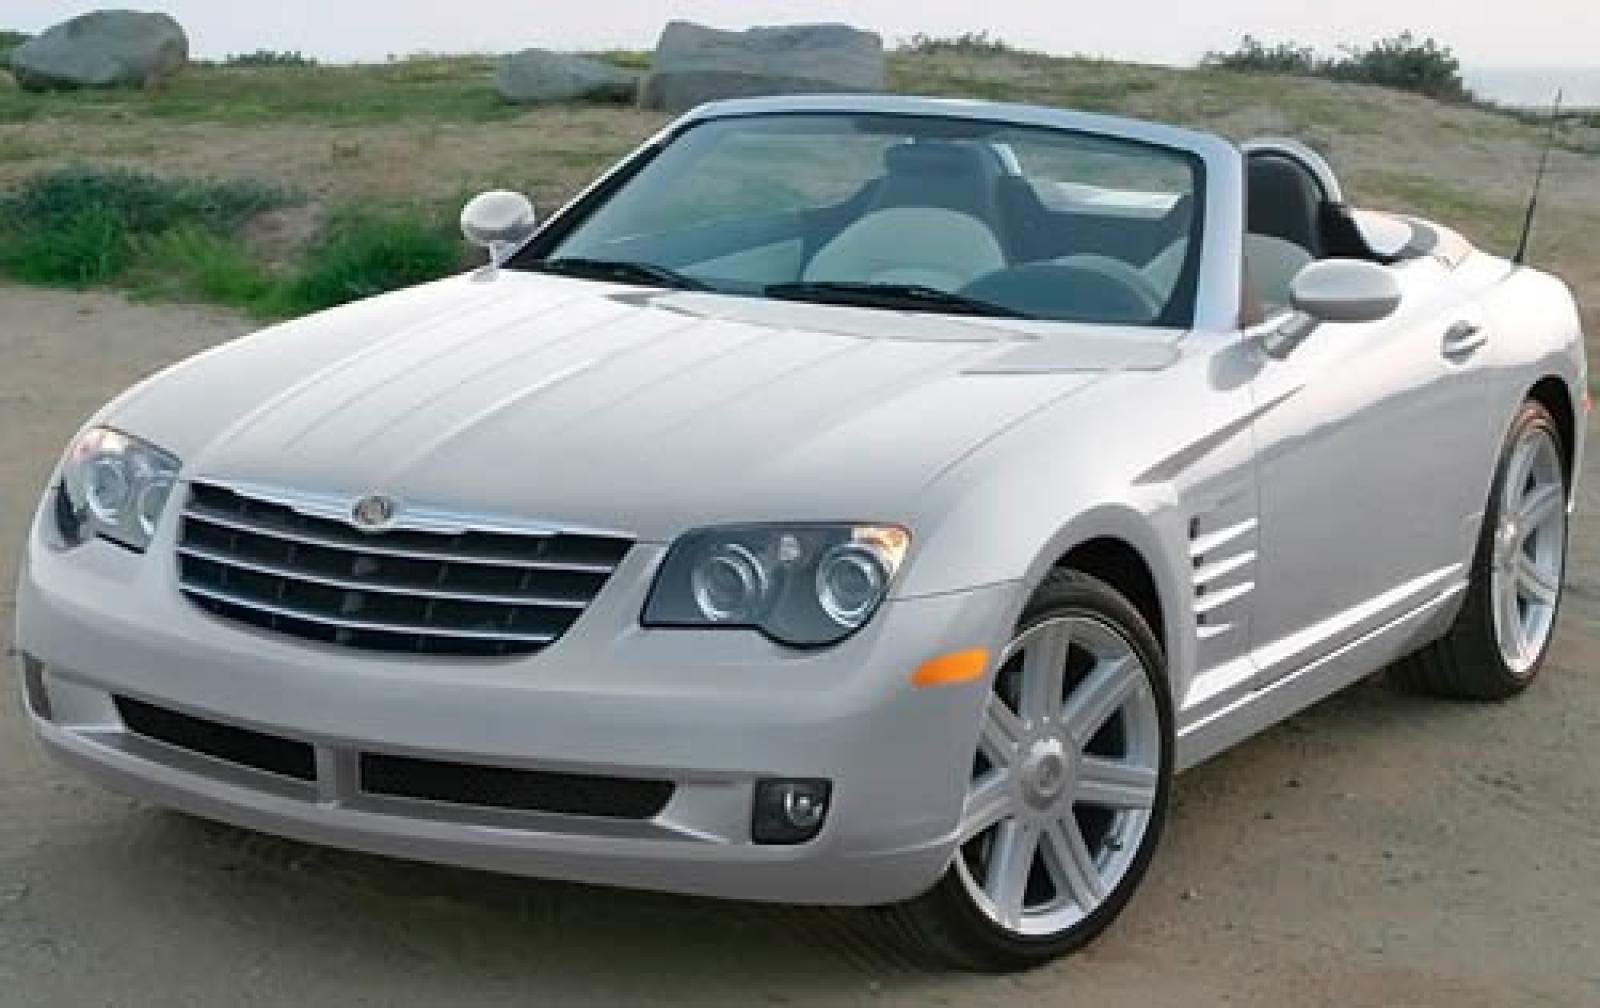 2008 chrysler crossfire information and photos zombiedrive. Black Bedroom Furniture Sets. Home Design Ideas